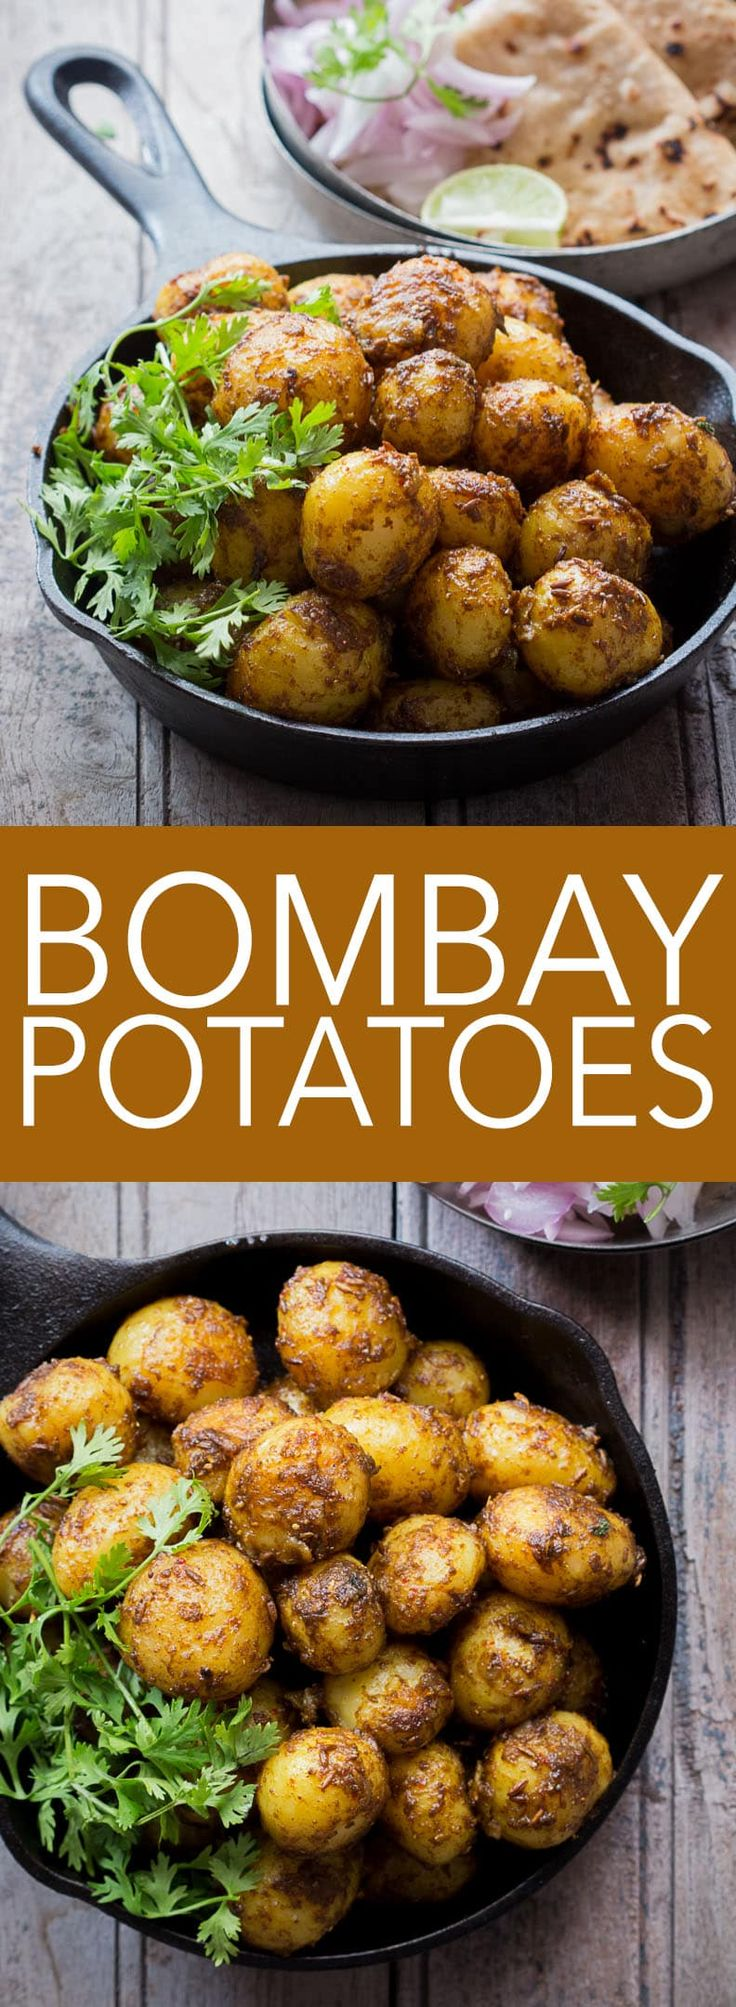 Bombay Potatoes are simply chatpate masala aloo. Coated with spices and ready in under 15 minutes, they double up as appetizer and main course.